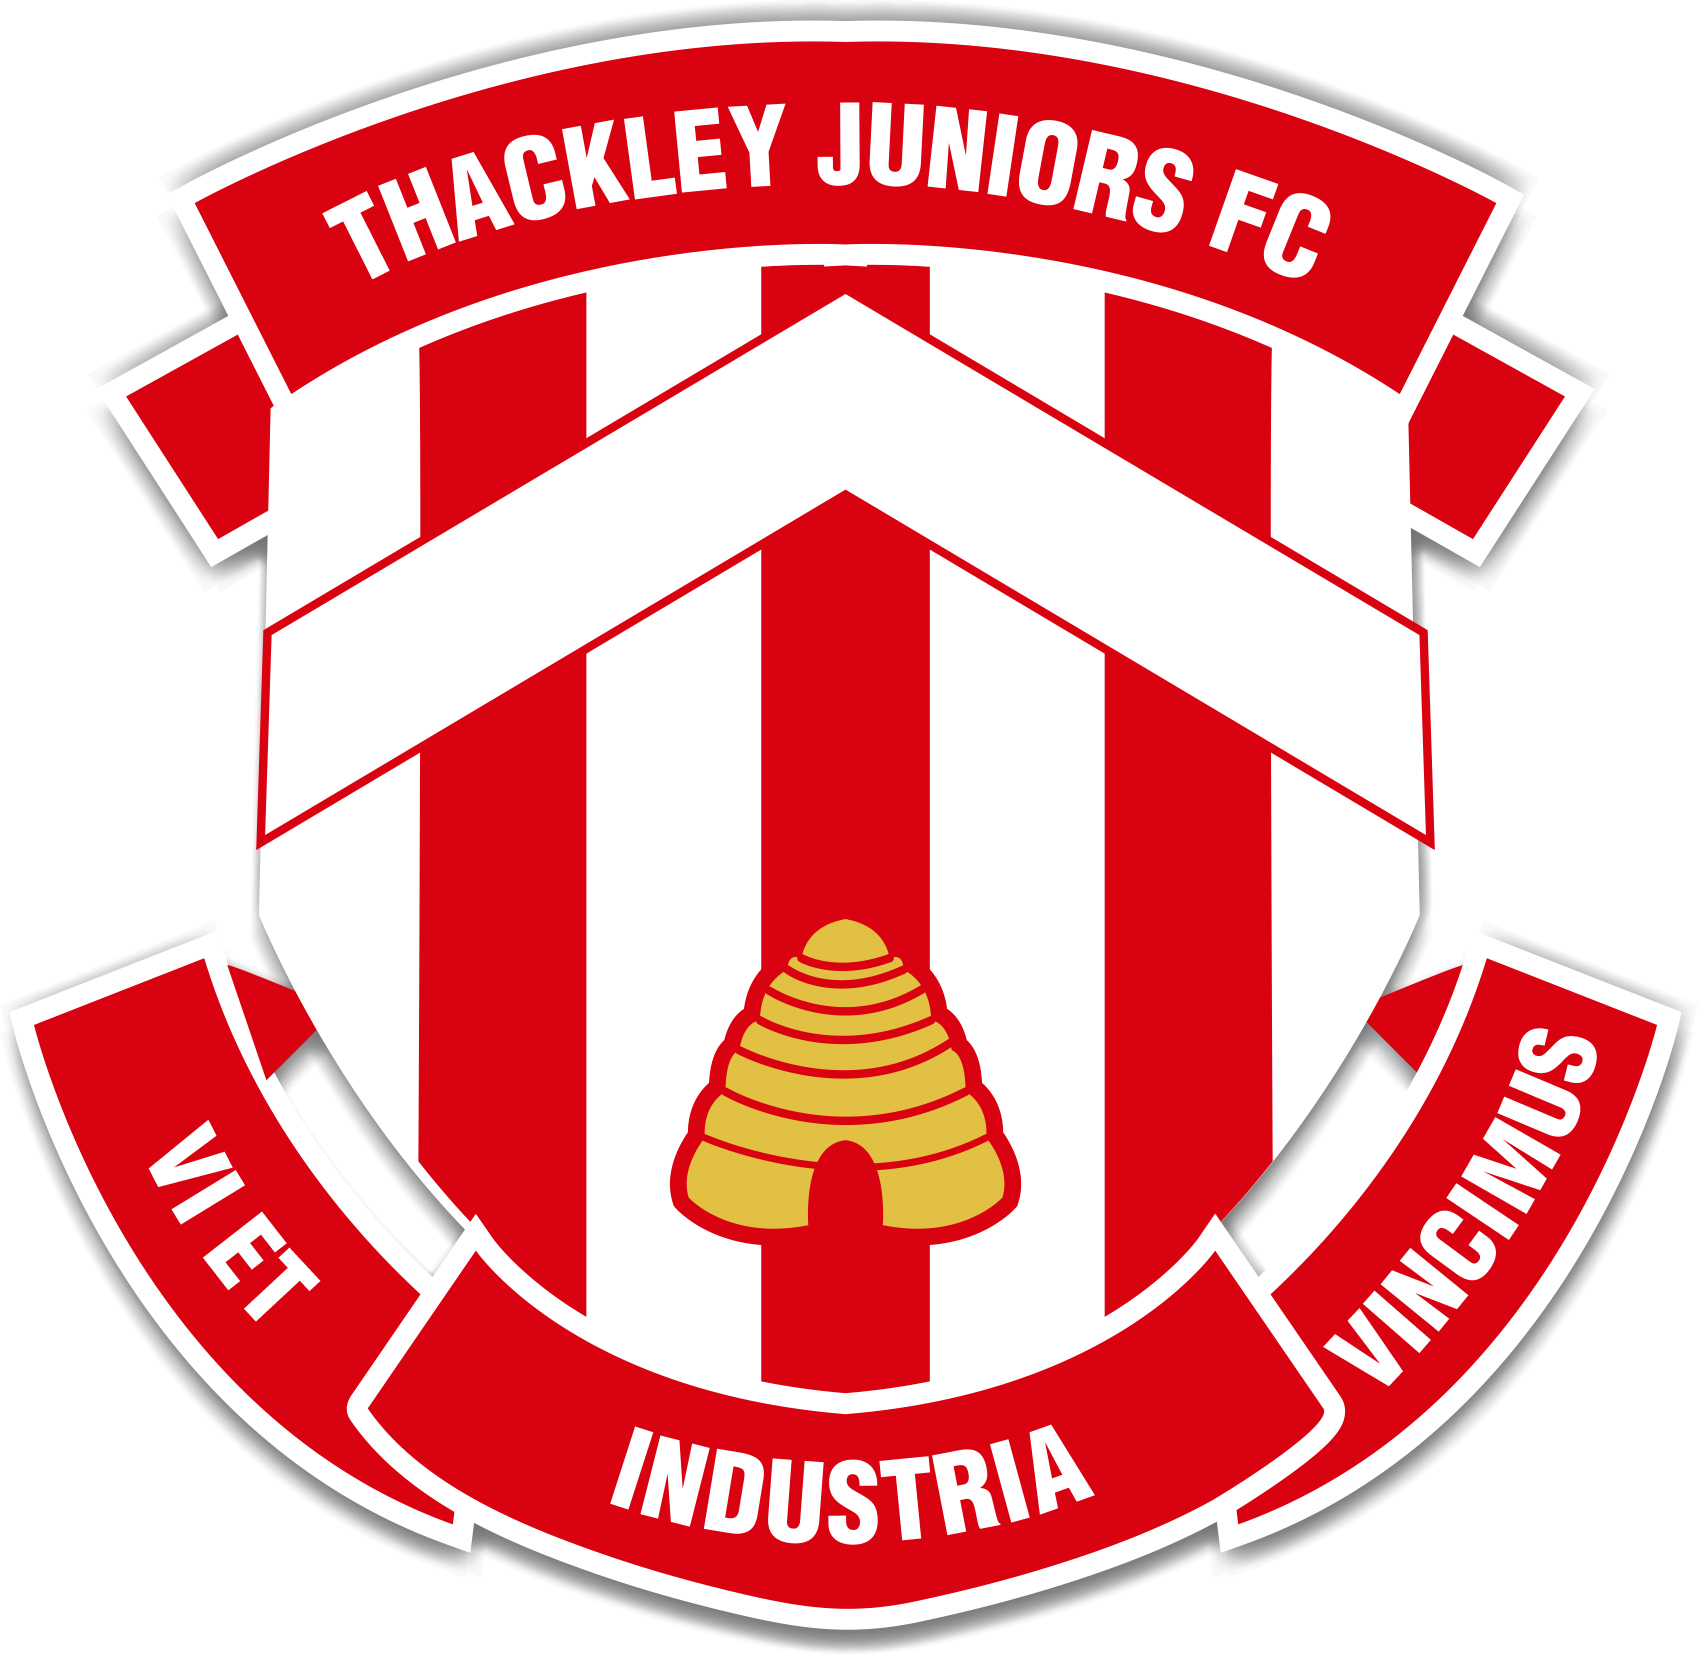 Thackley Juniors